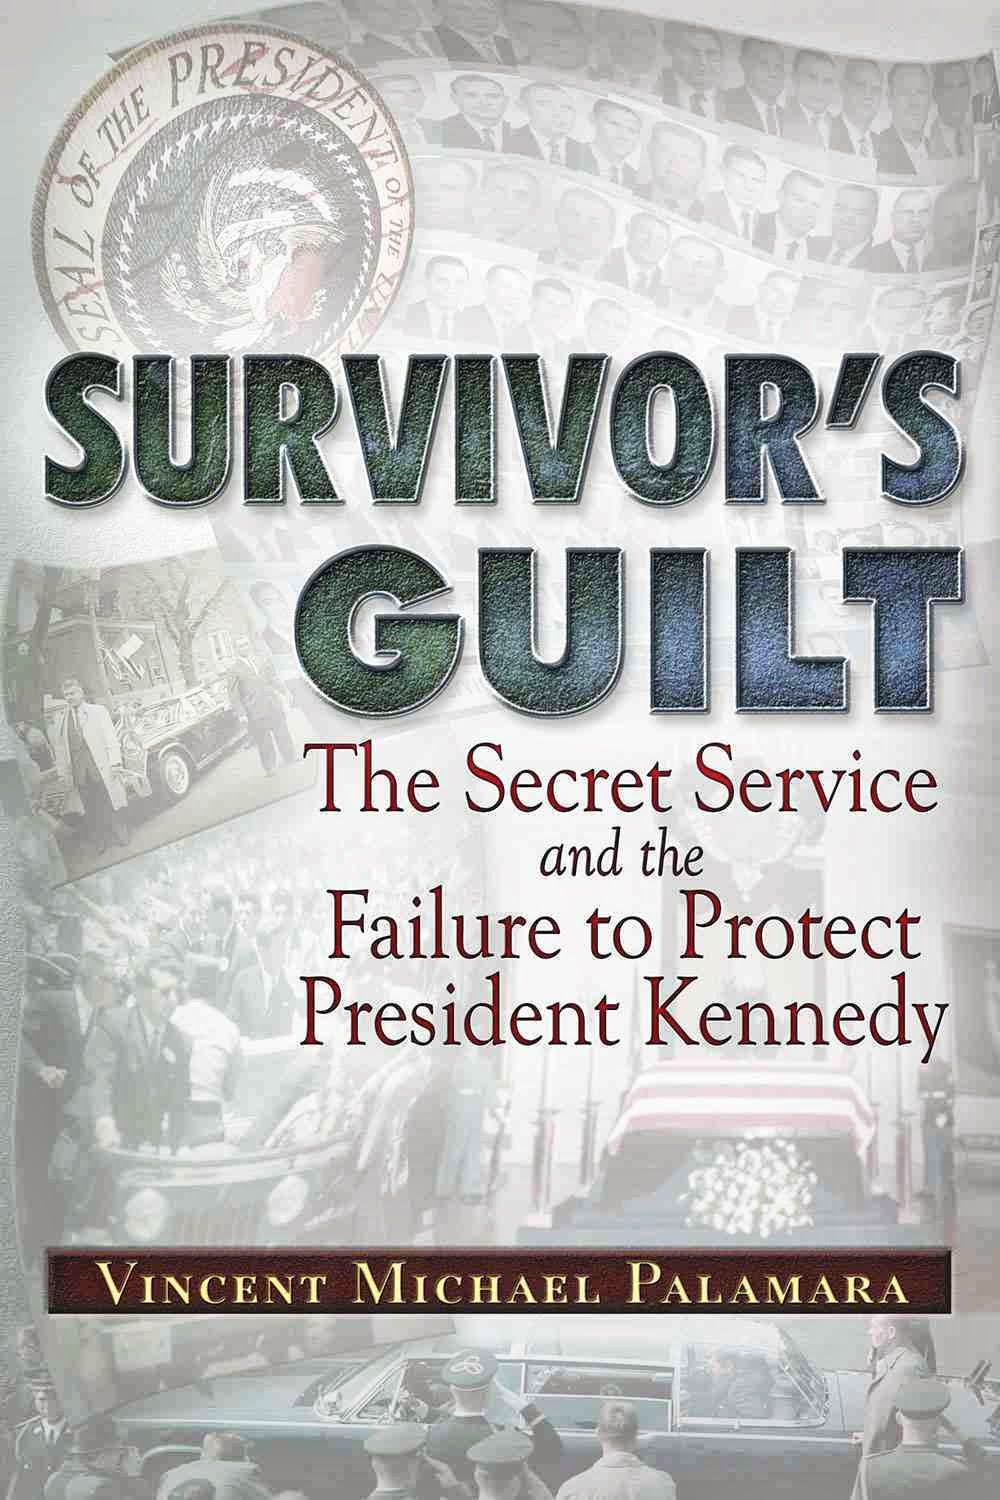 SURVIVOR'S GUILT- OUT NOW!